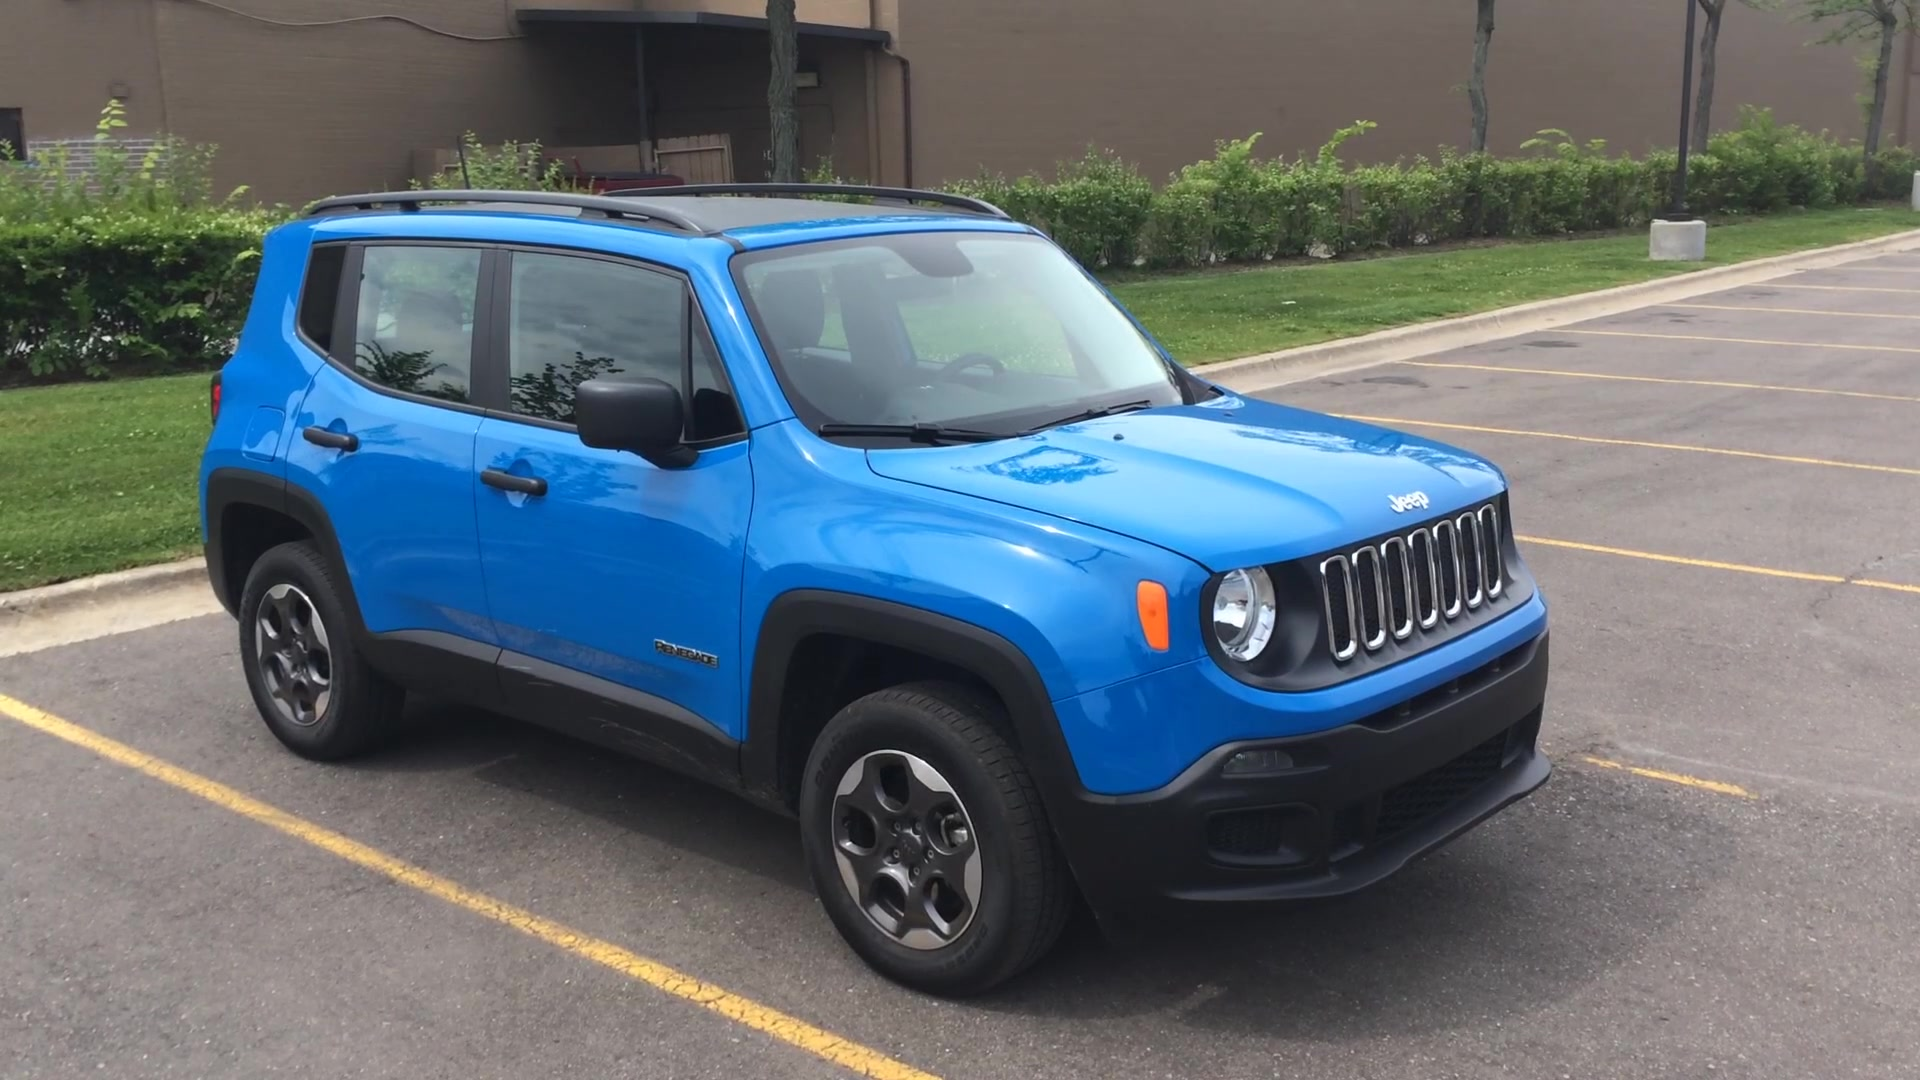 2019 Jeep Renegade gets facelift, new dash, bigger screen ...